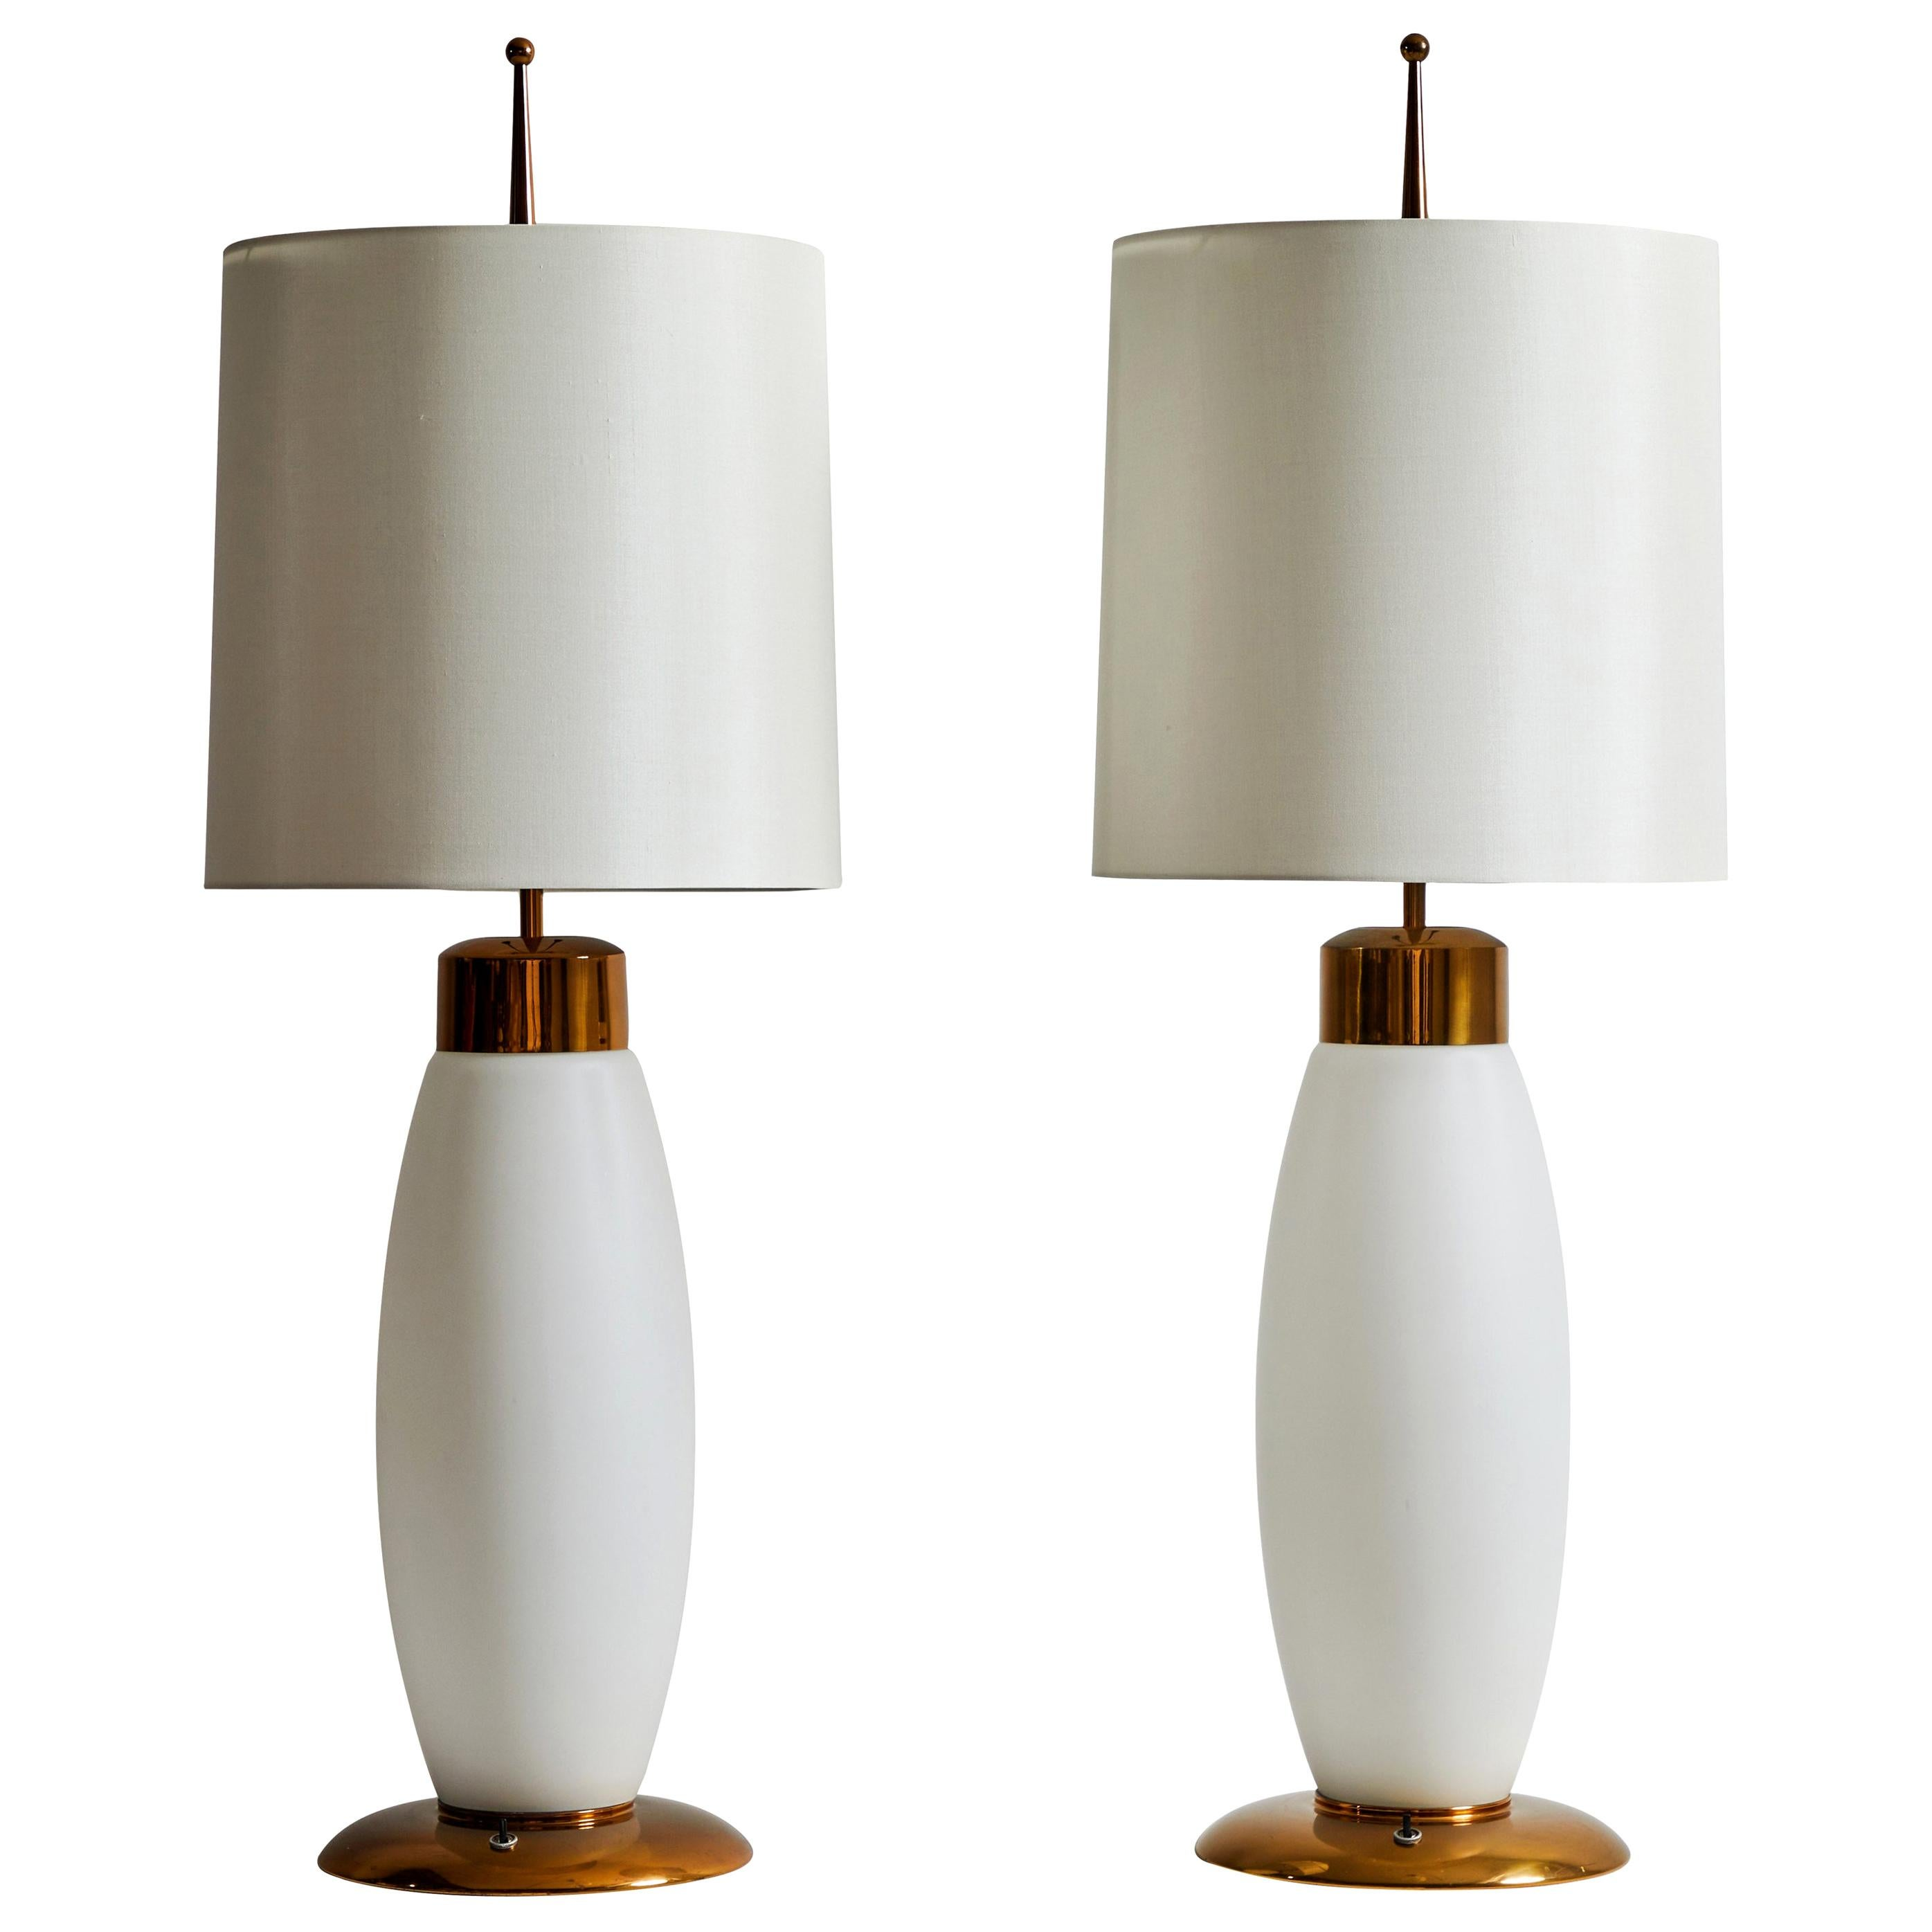 Pair of Table Lamps by Stilnovo